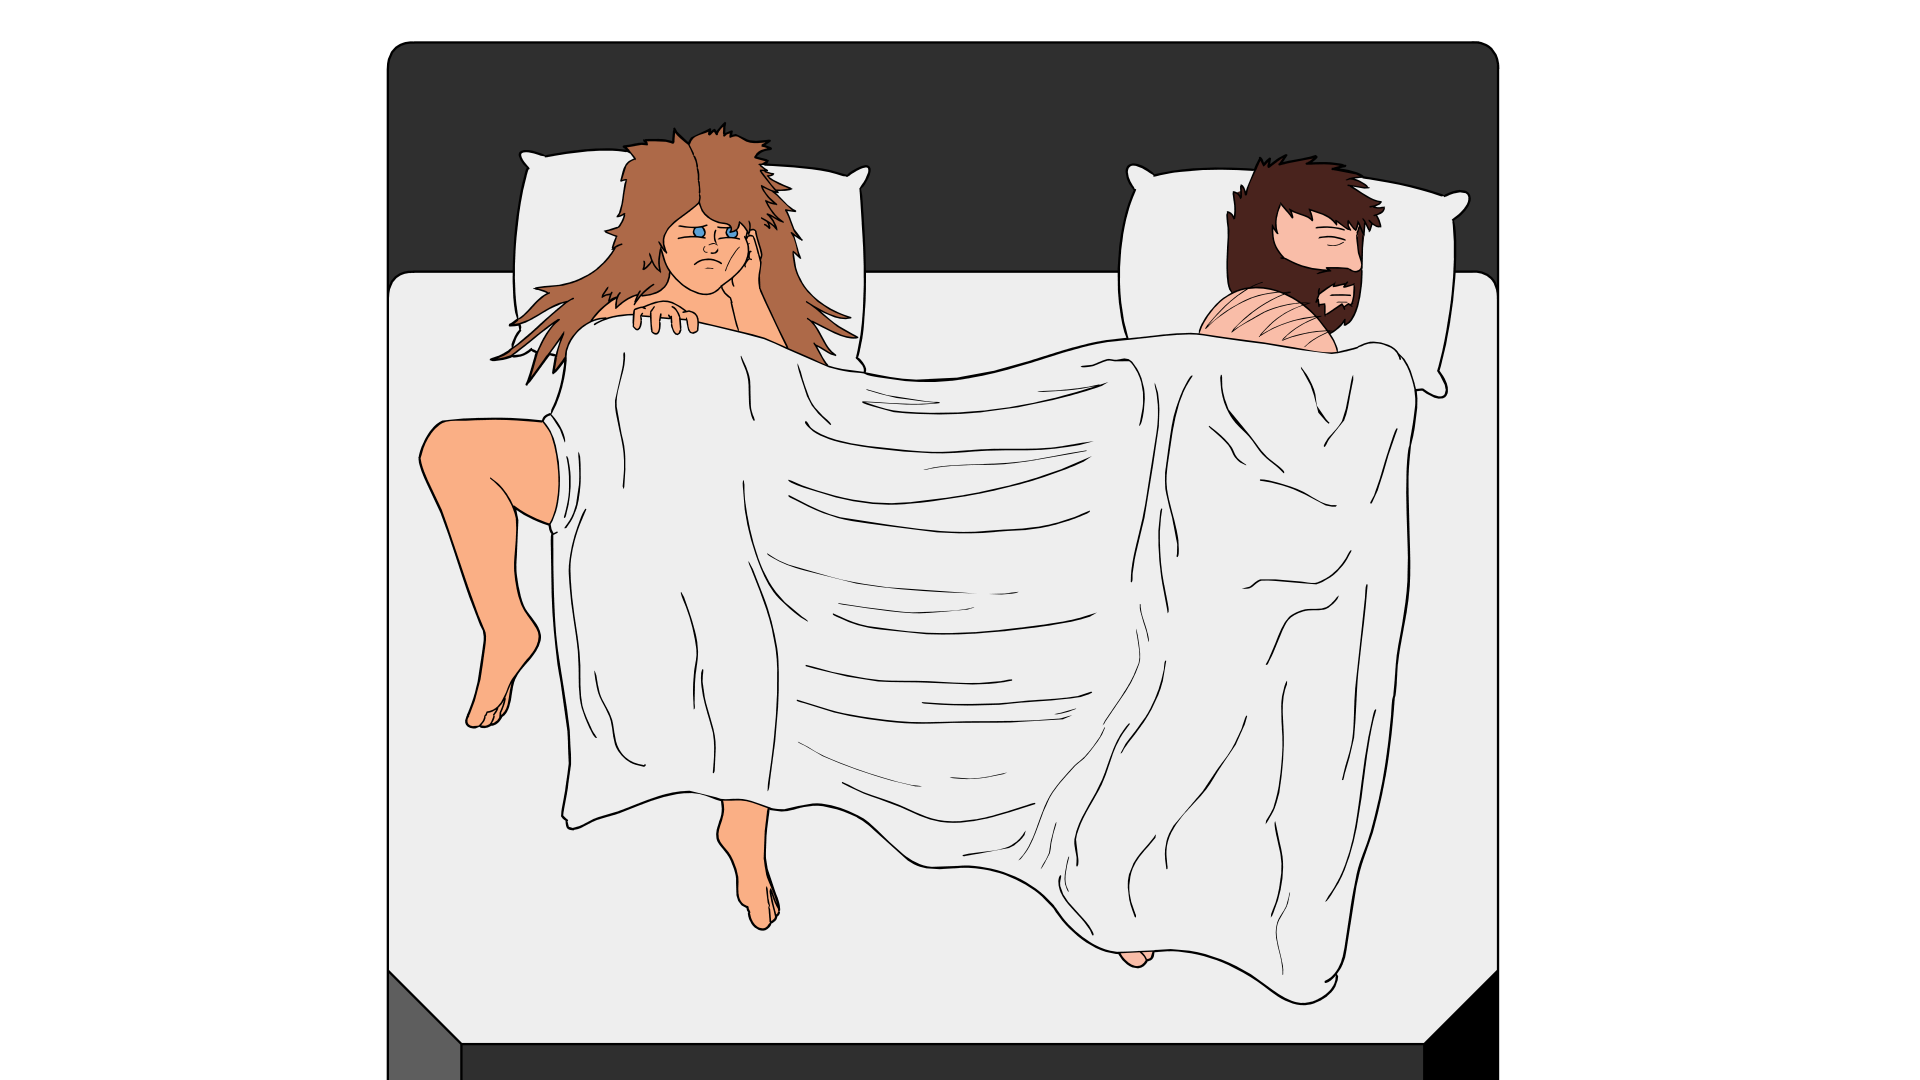 5081347_141385032512_coupleinbed4.png